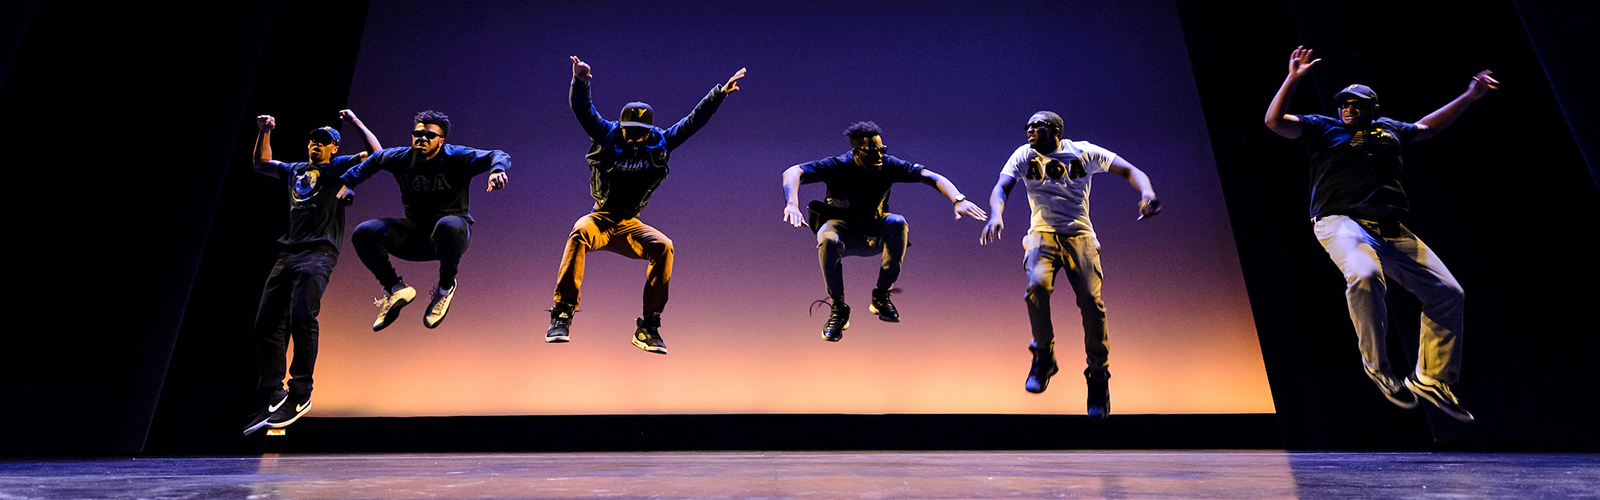 Six student dancers jump mid-air during a dance performance